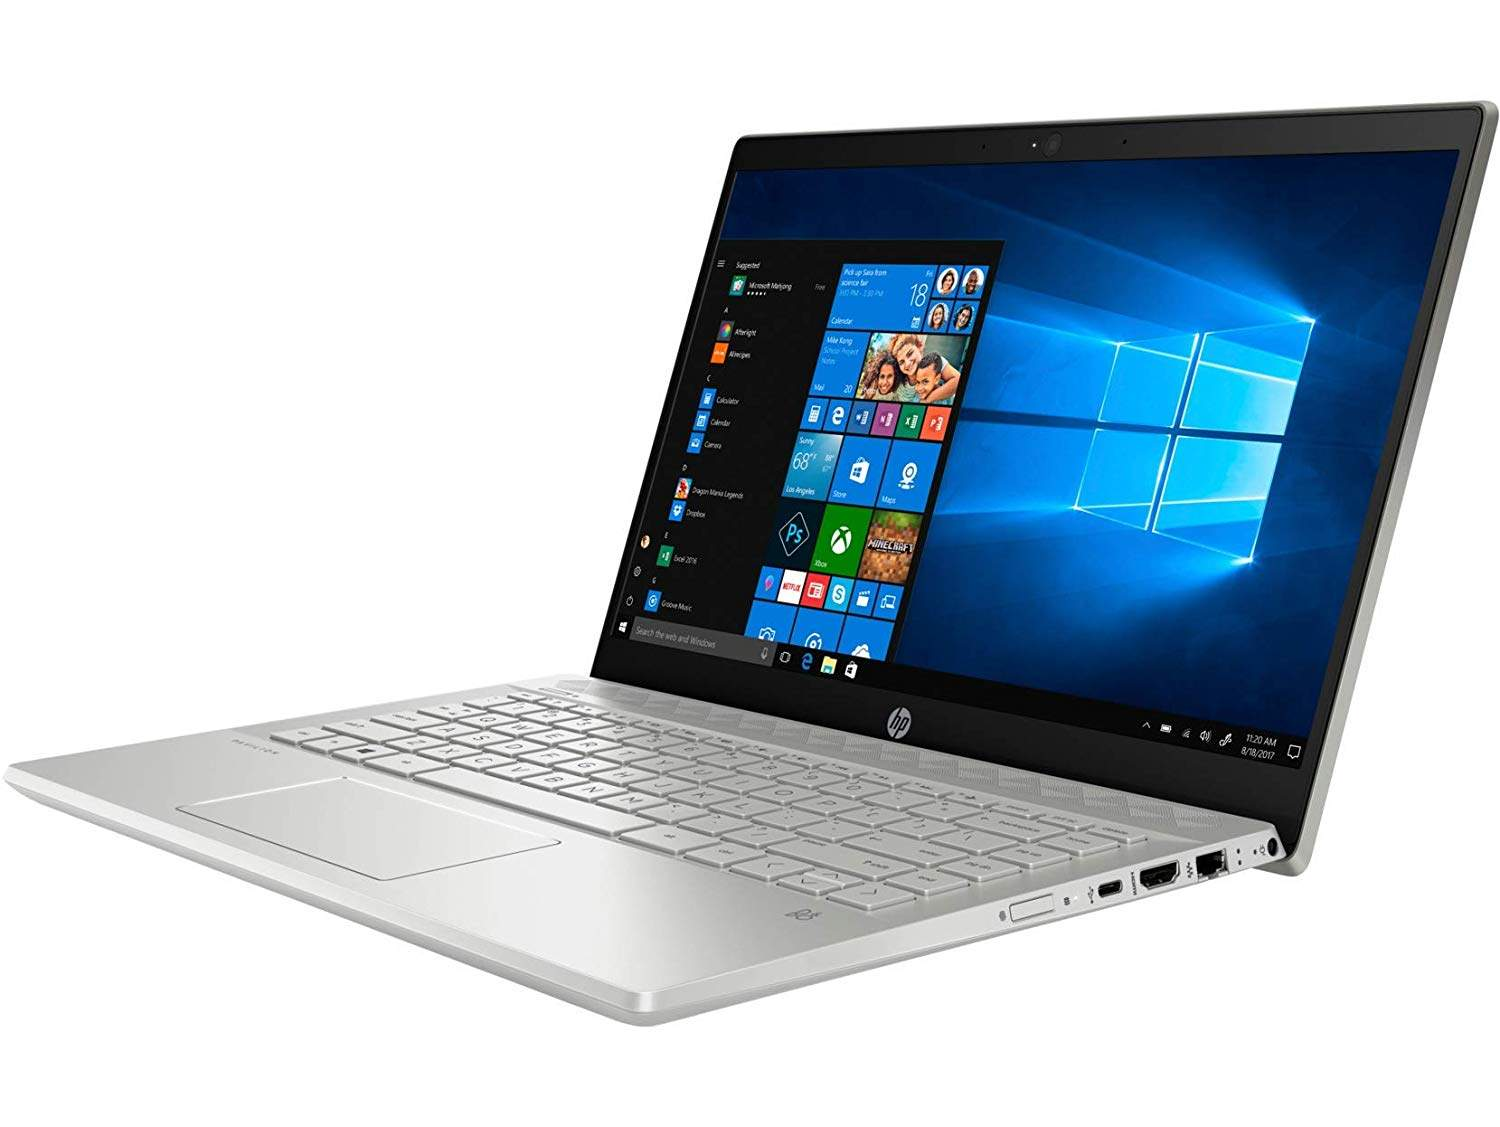 HP Pavilion 14 14-ce3022TX 2019 14-  Laptop (10th Gen Core I5-1035G1/8GB/1TB HDD + 256GB SSD/Windows 10, Home/2GB Graphics), Mineral Silver